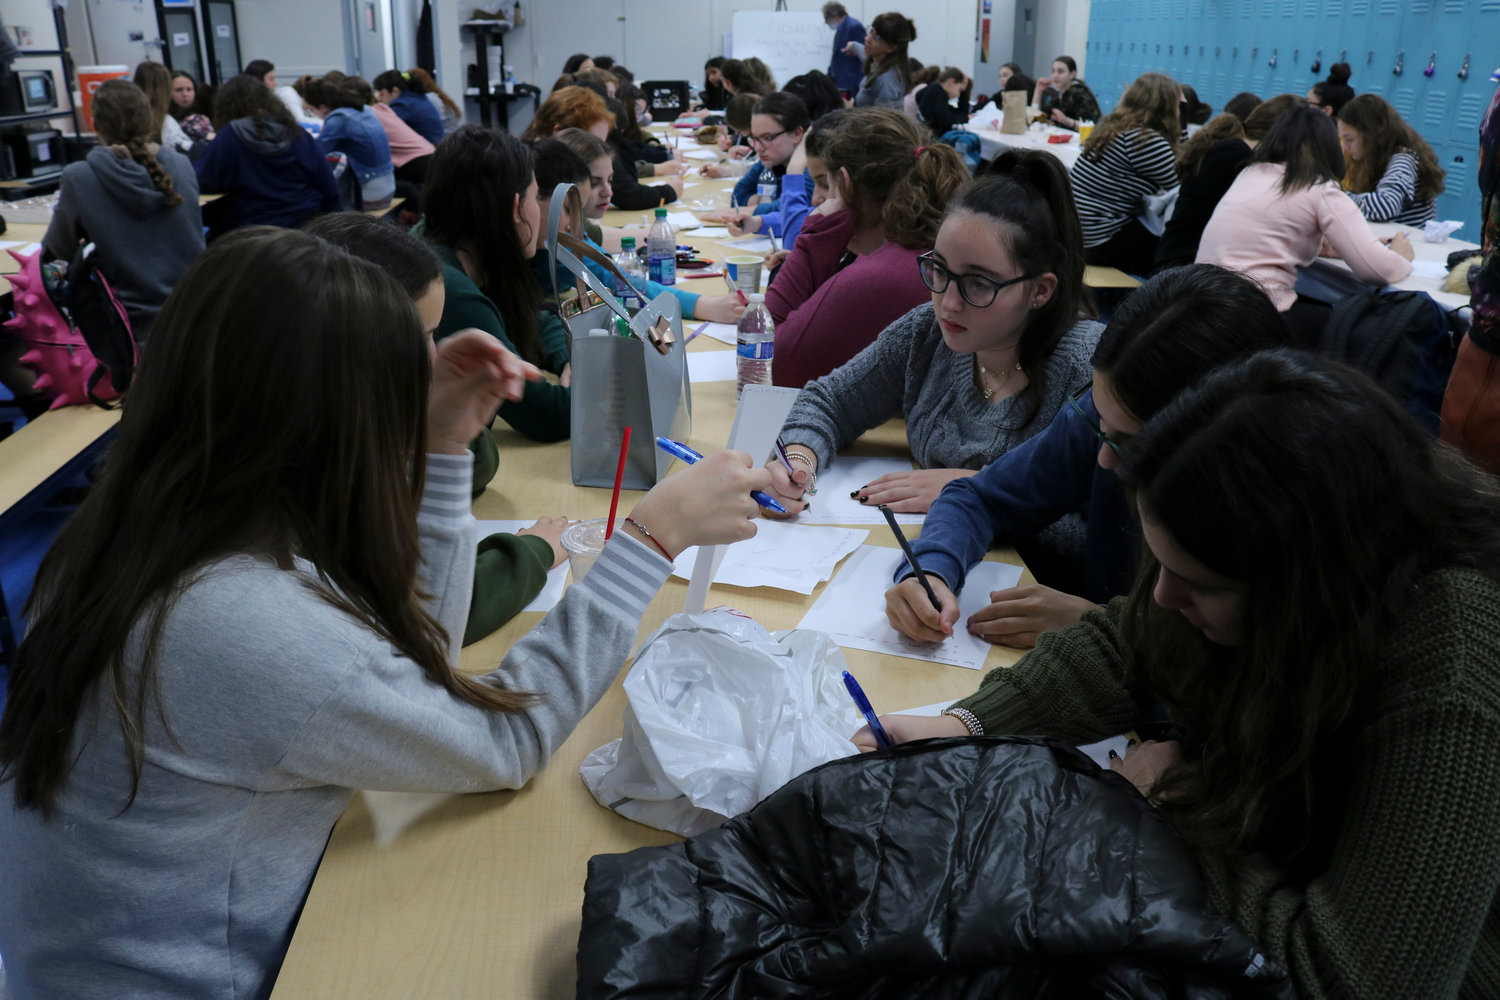 Midreshet Shalhevet High School students wrote letters to the Pittsburgh Jewish community.